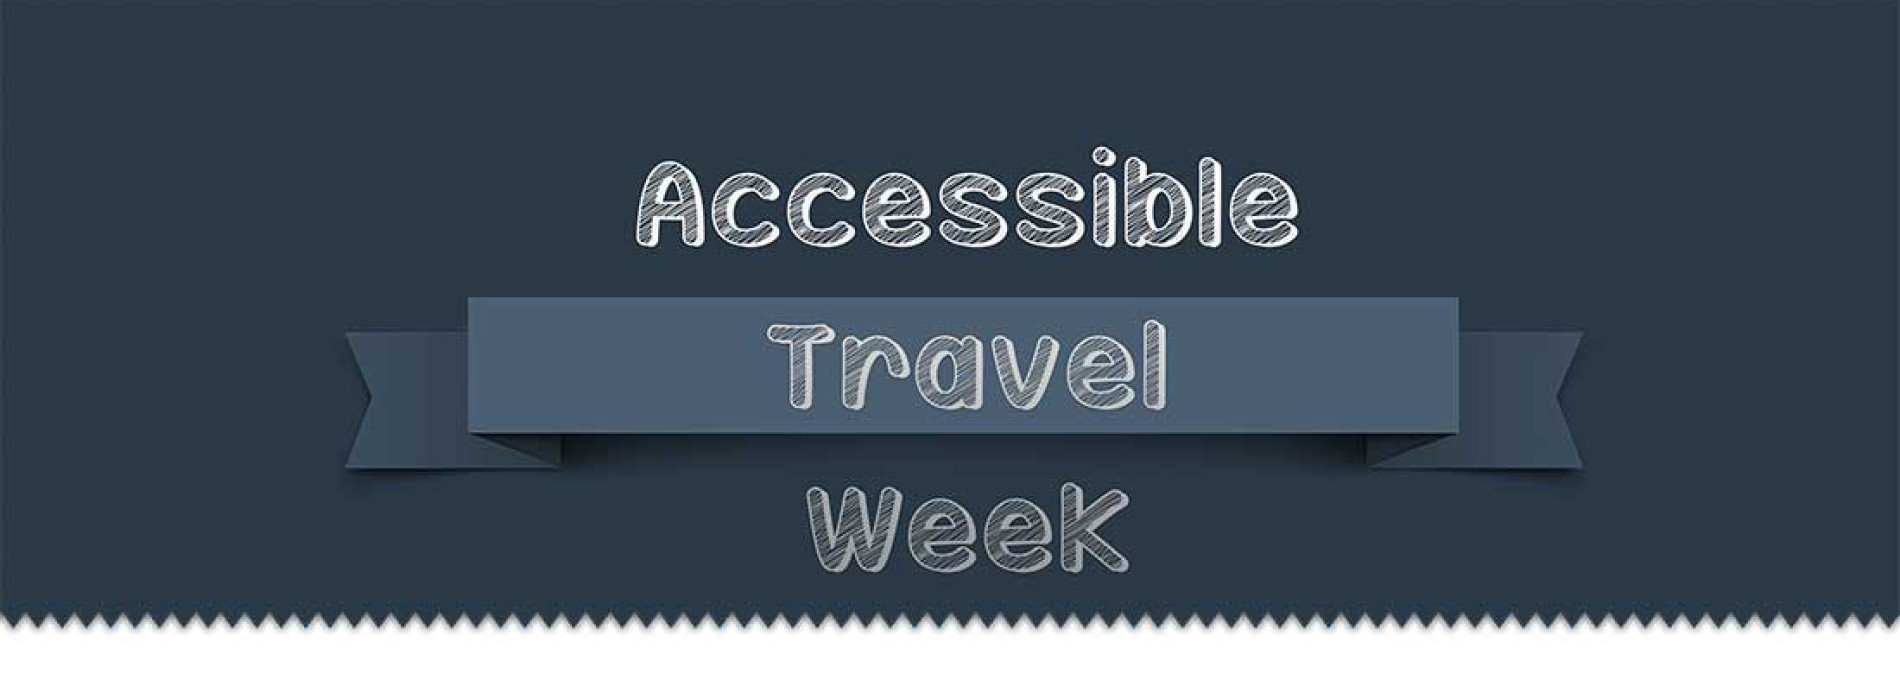 Accessible Travel Week: accessible accommodation